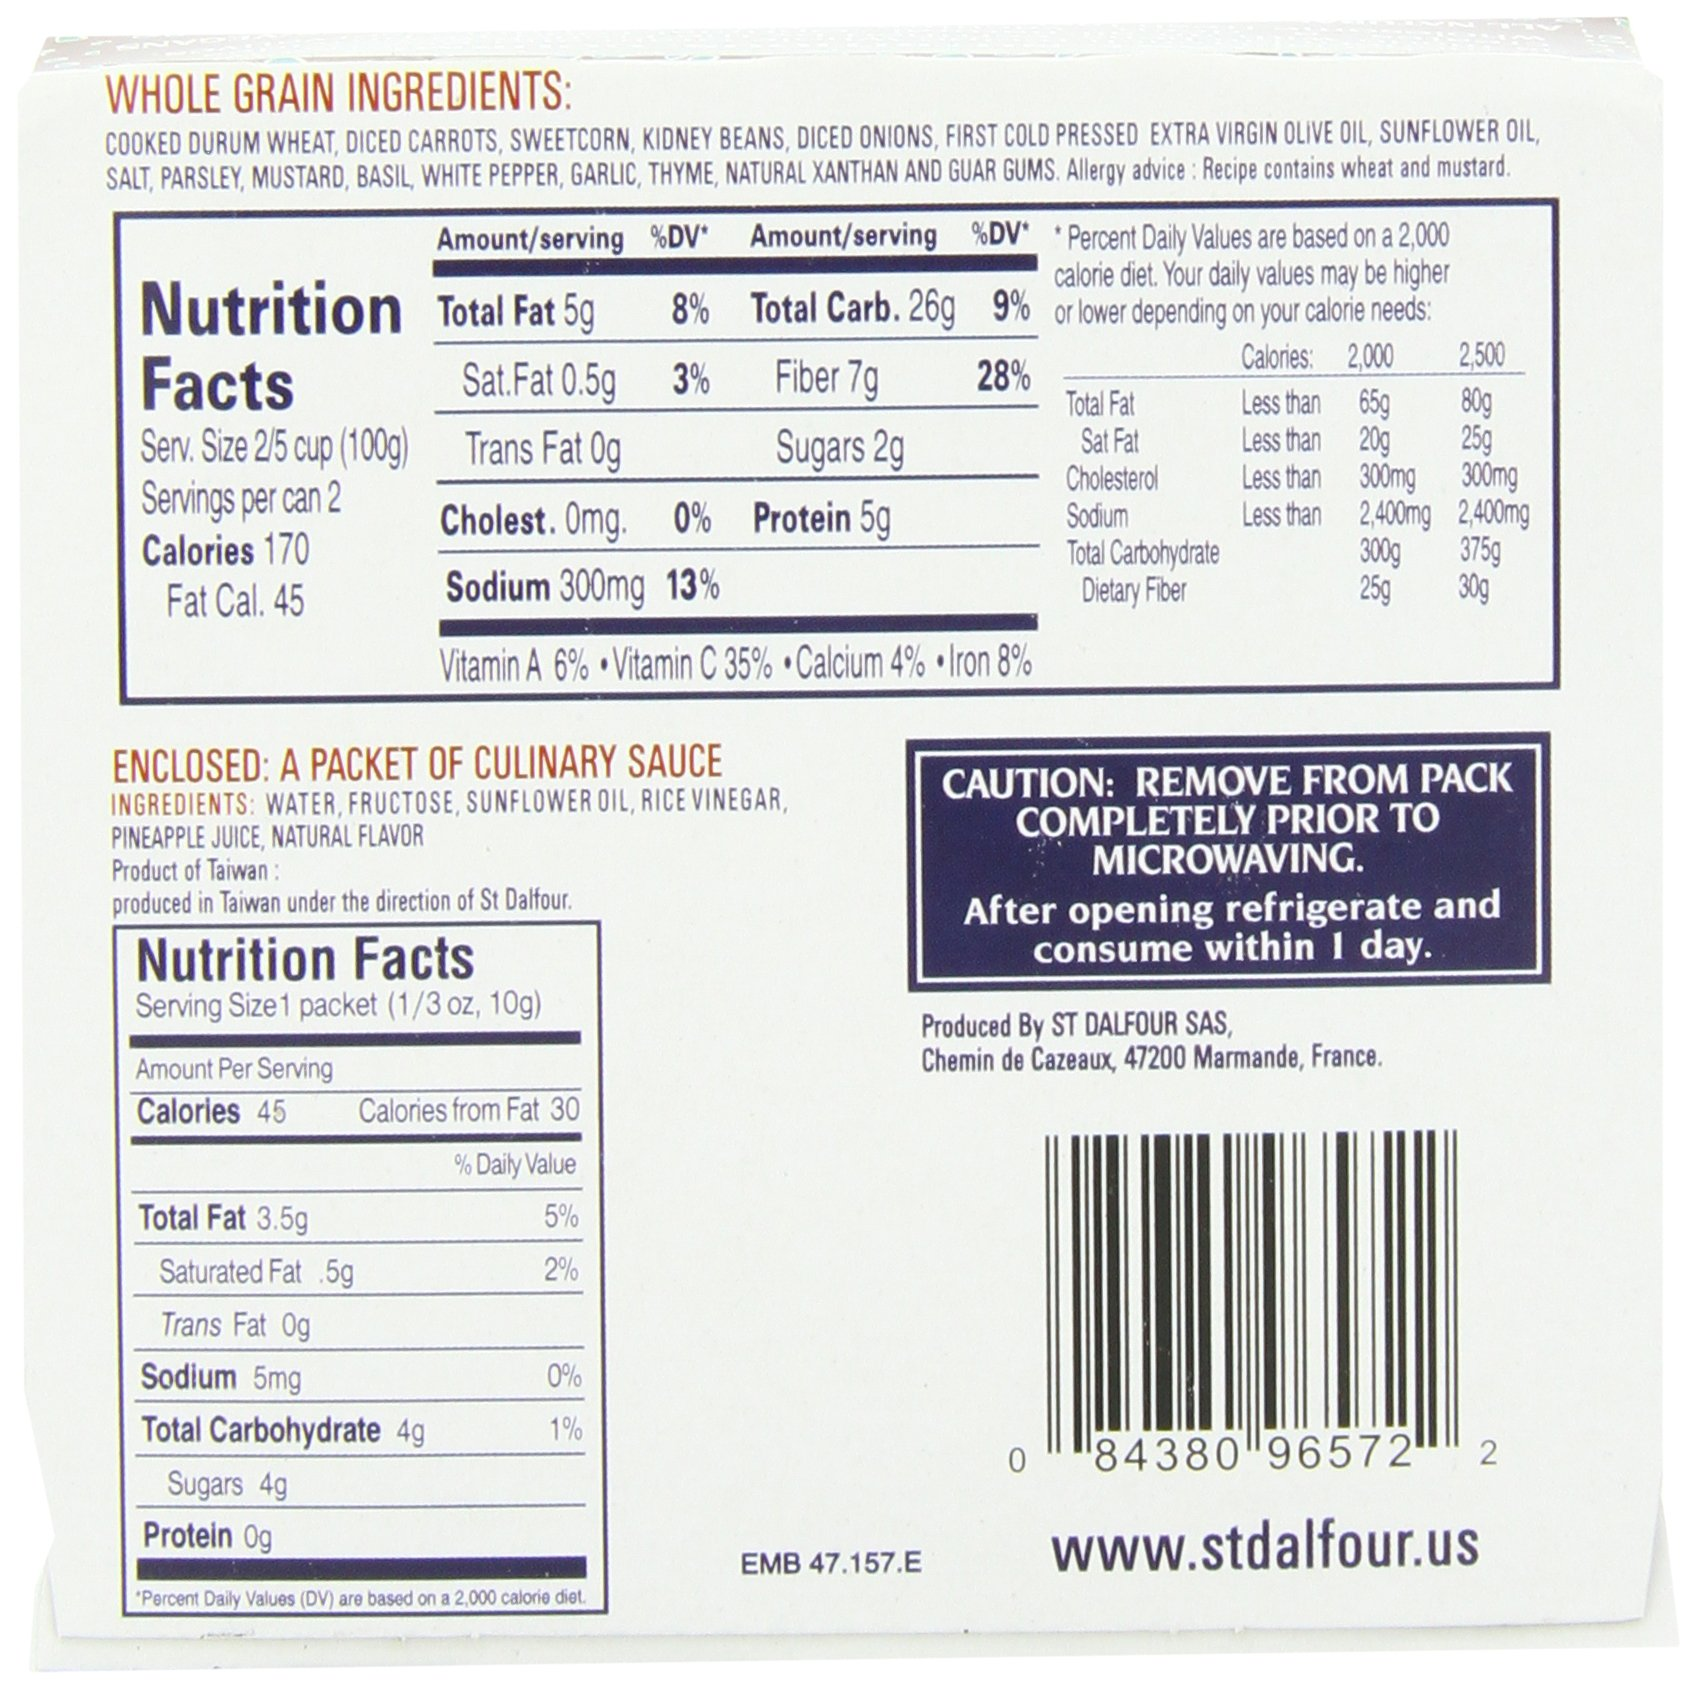 St. Dalfour Gourmet On The Go, Ready to Eat Whole Grain with Beans, 6.2-Ounce (Pack of 6) by St. Dalfour (Image #5)